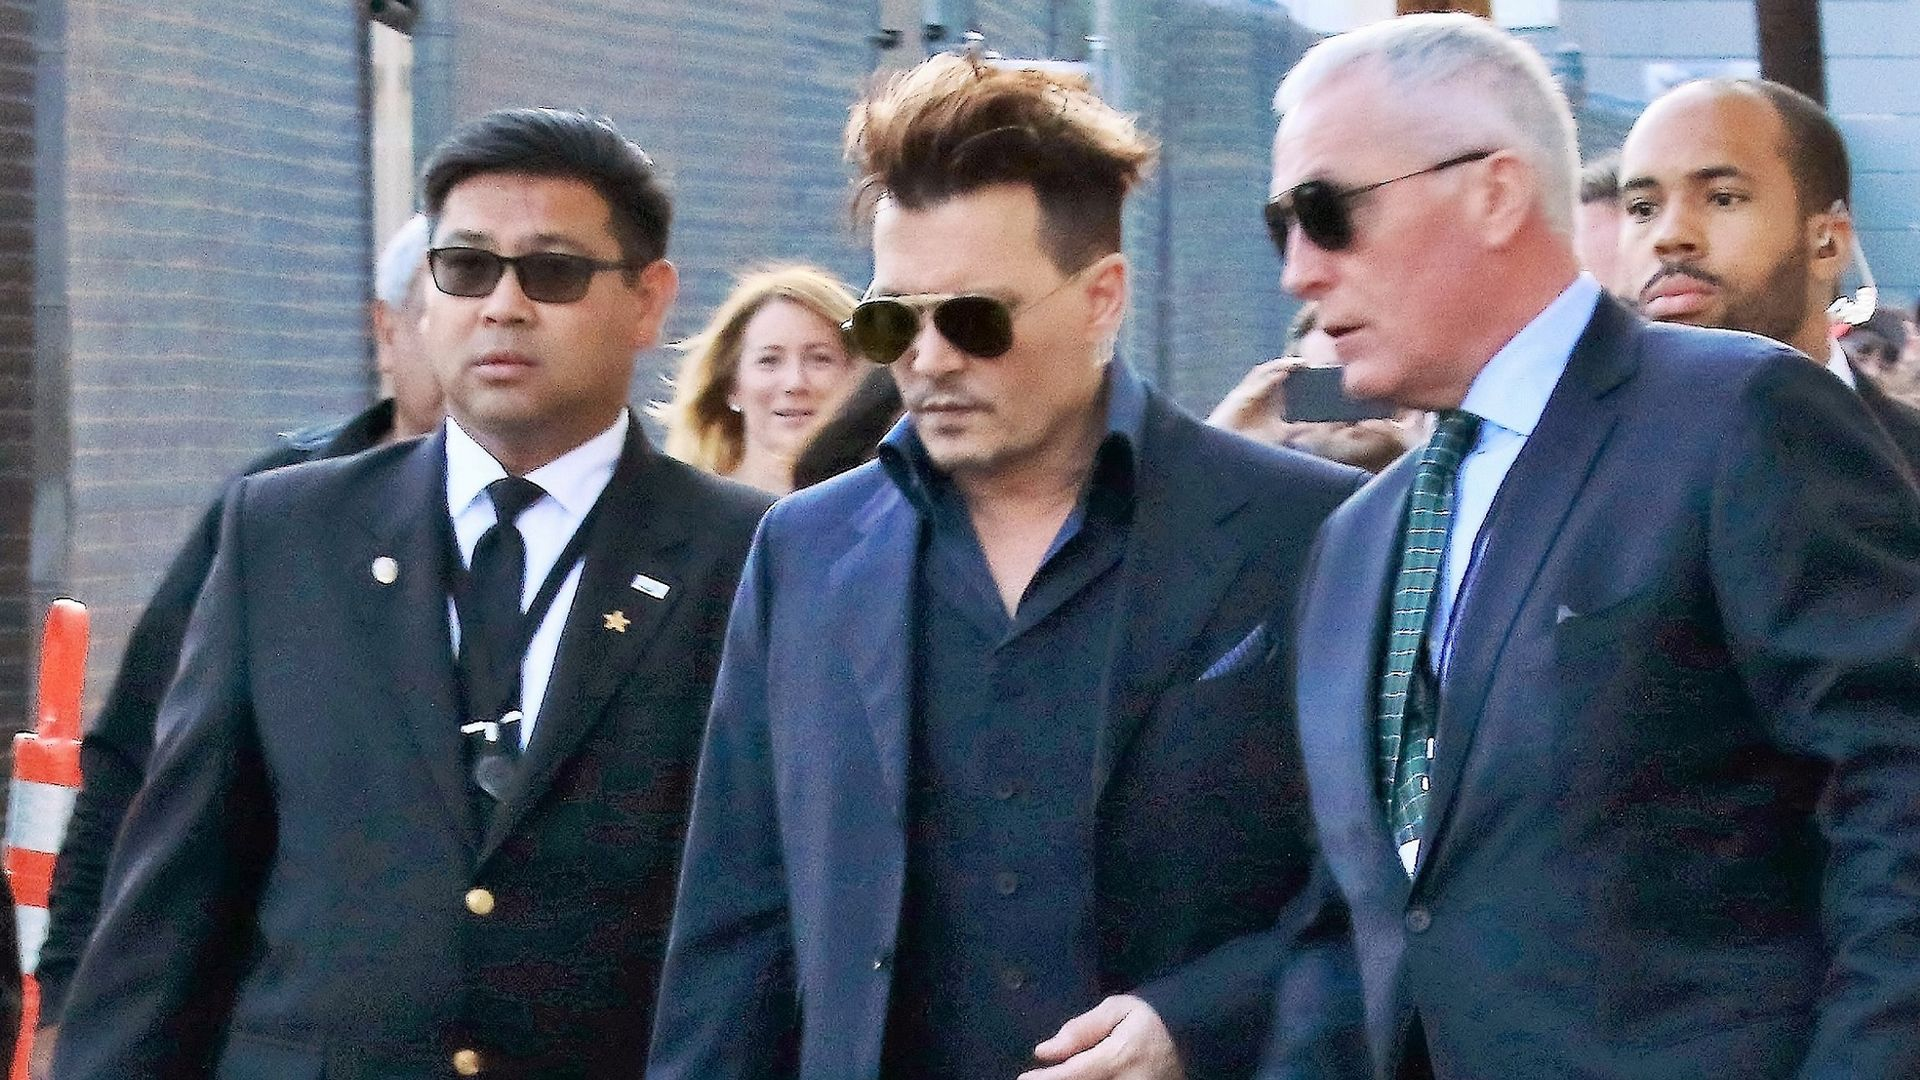 Johnny Depp walking with his personal security guards